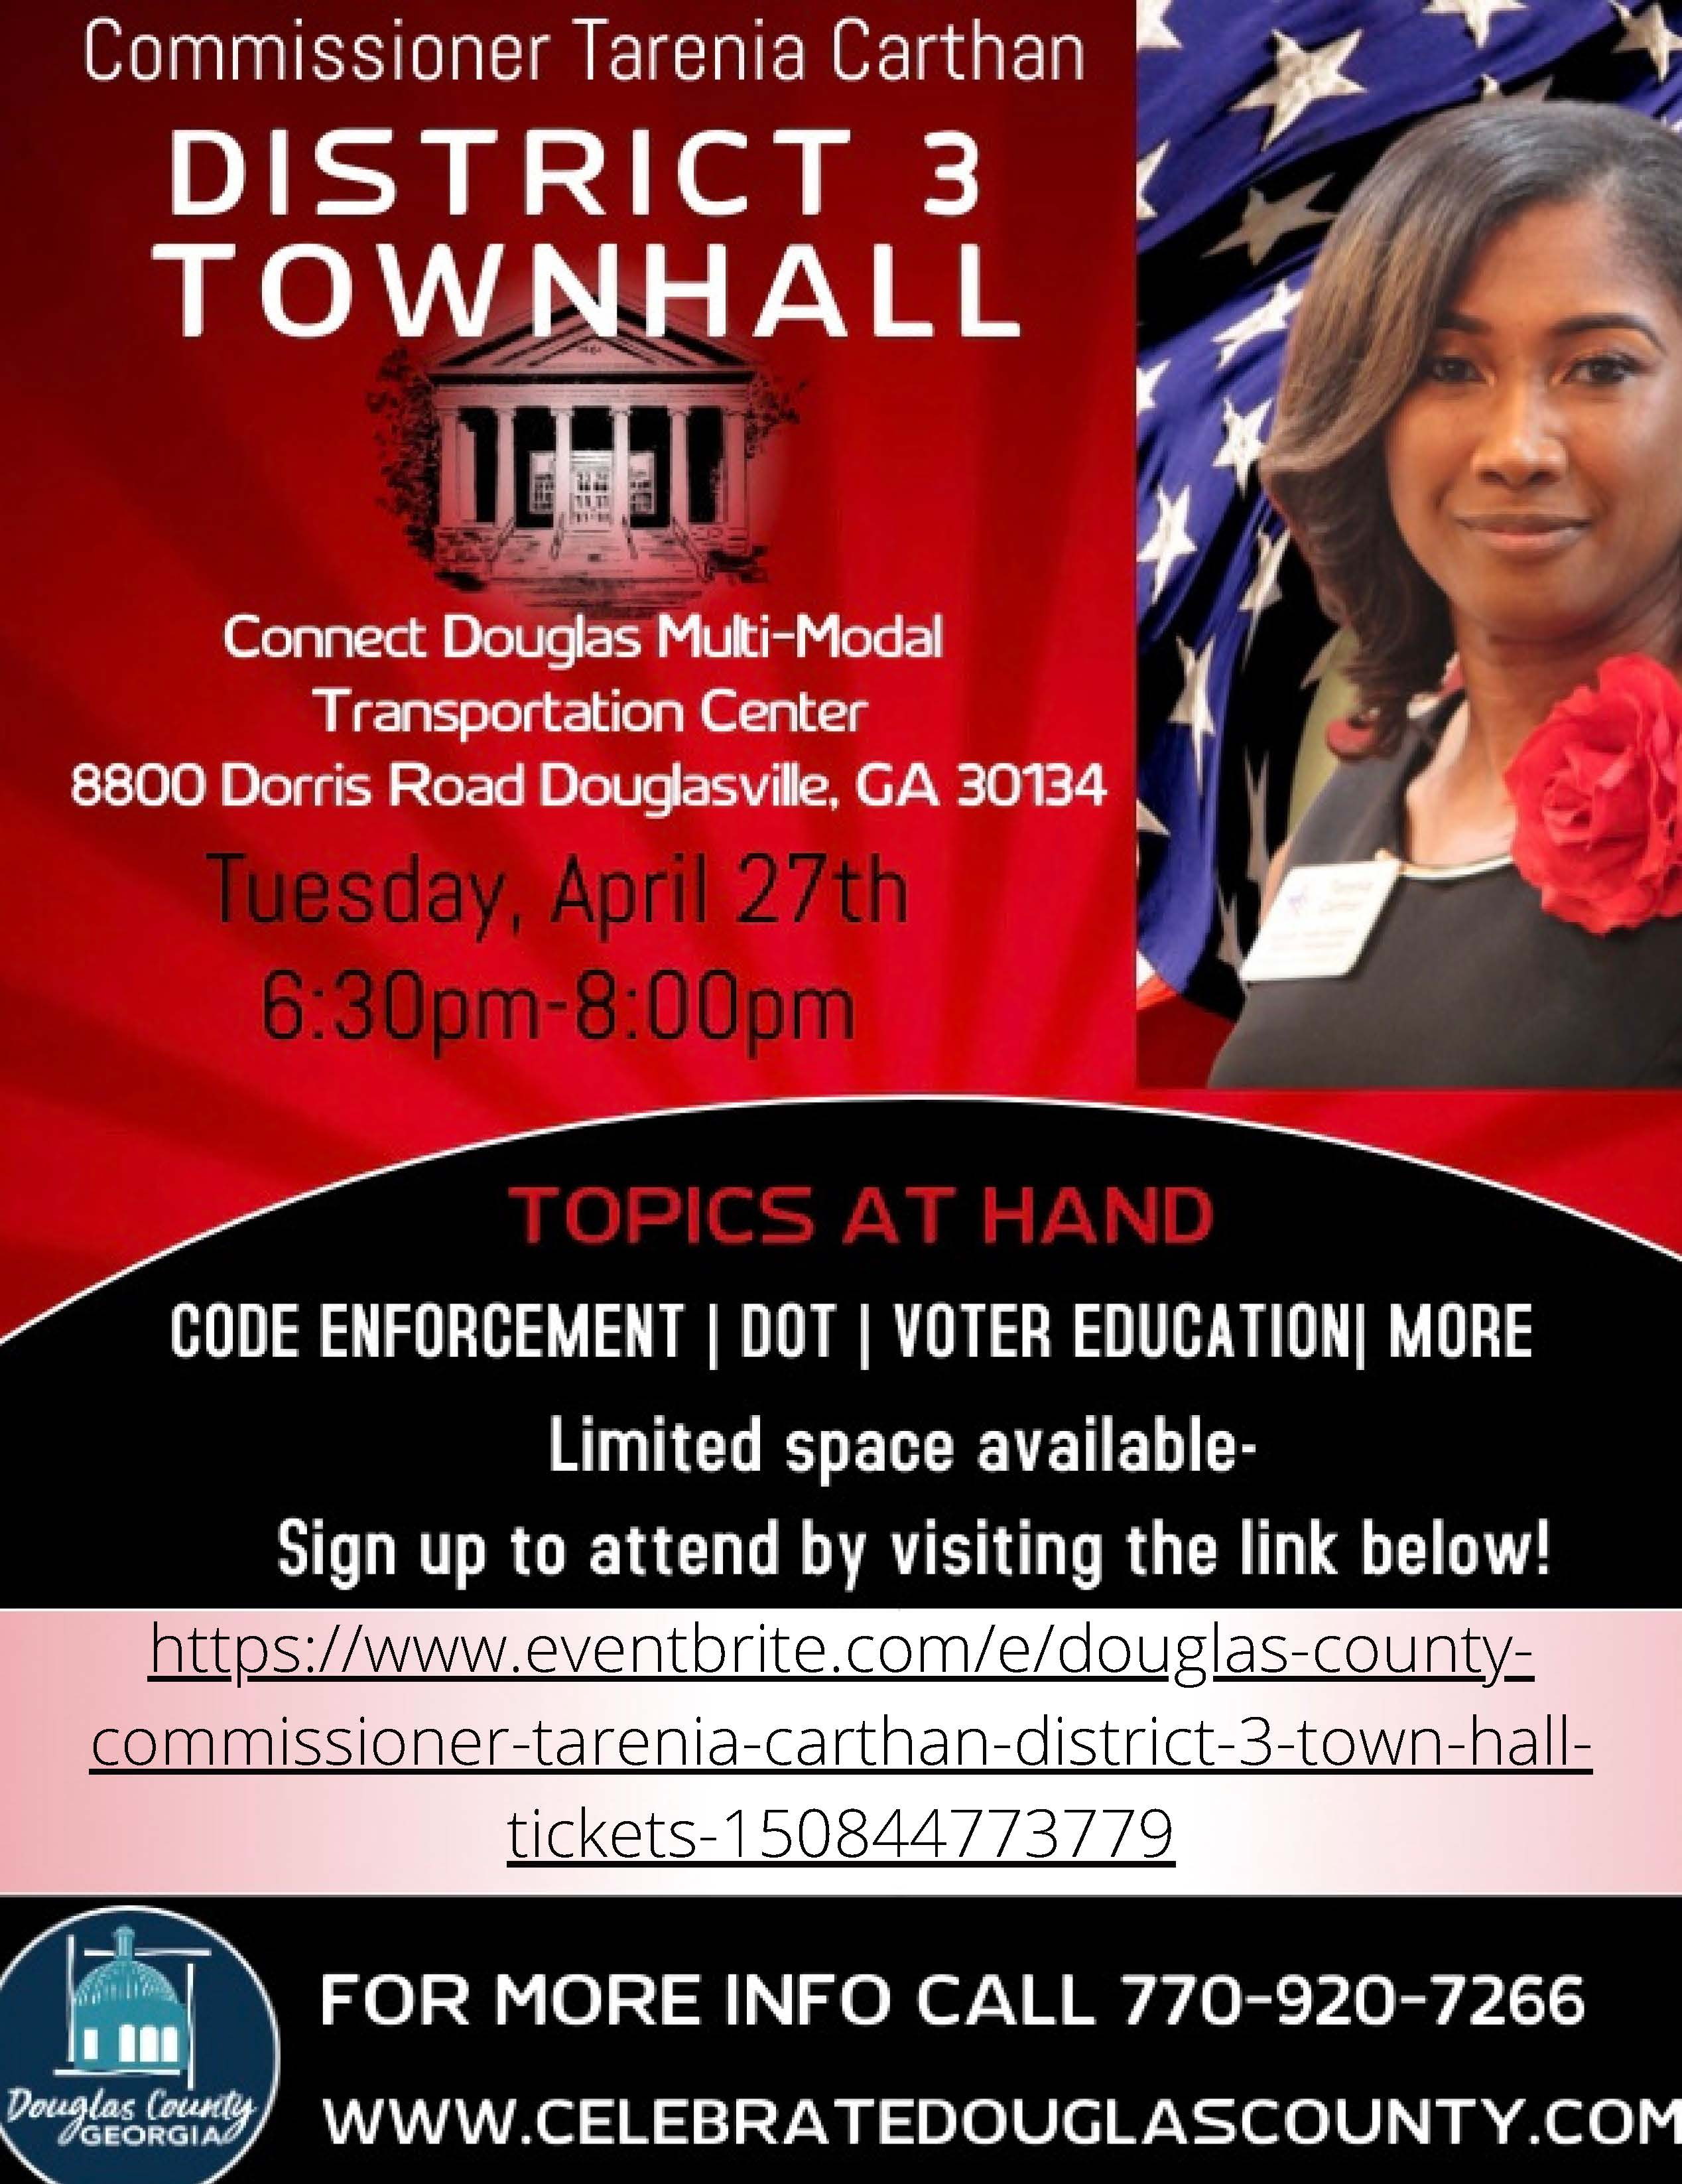 District 3 Updated Townhall Flyer